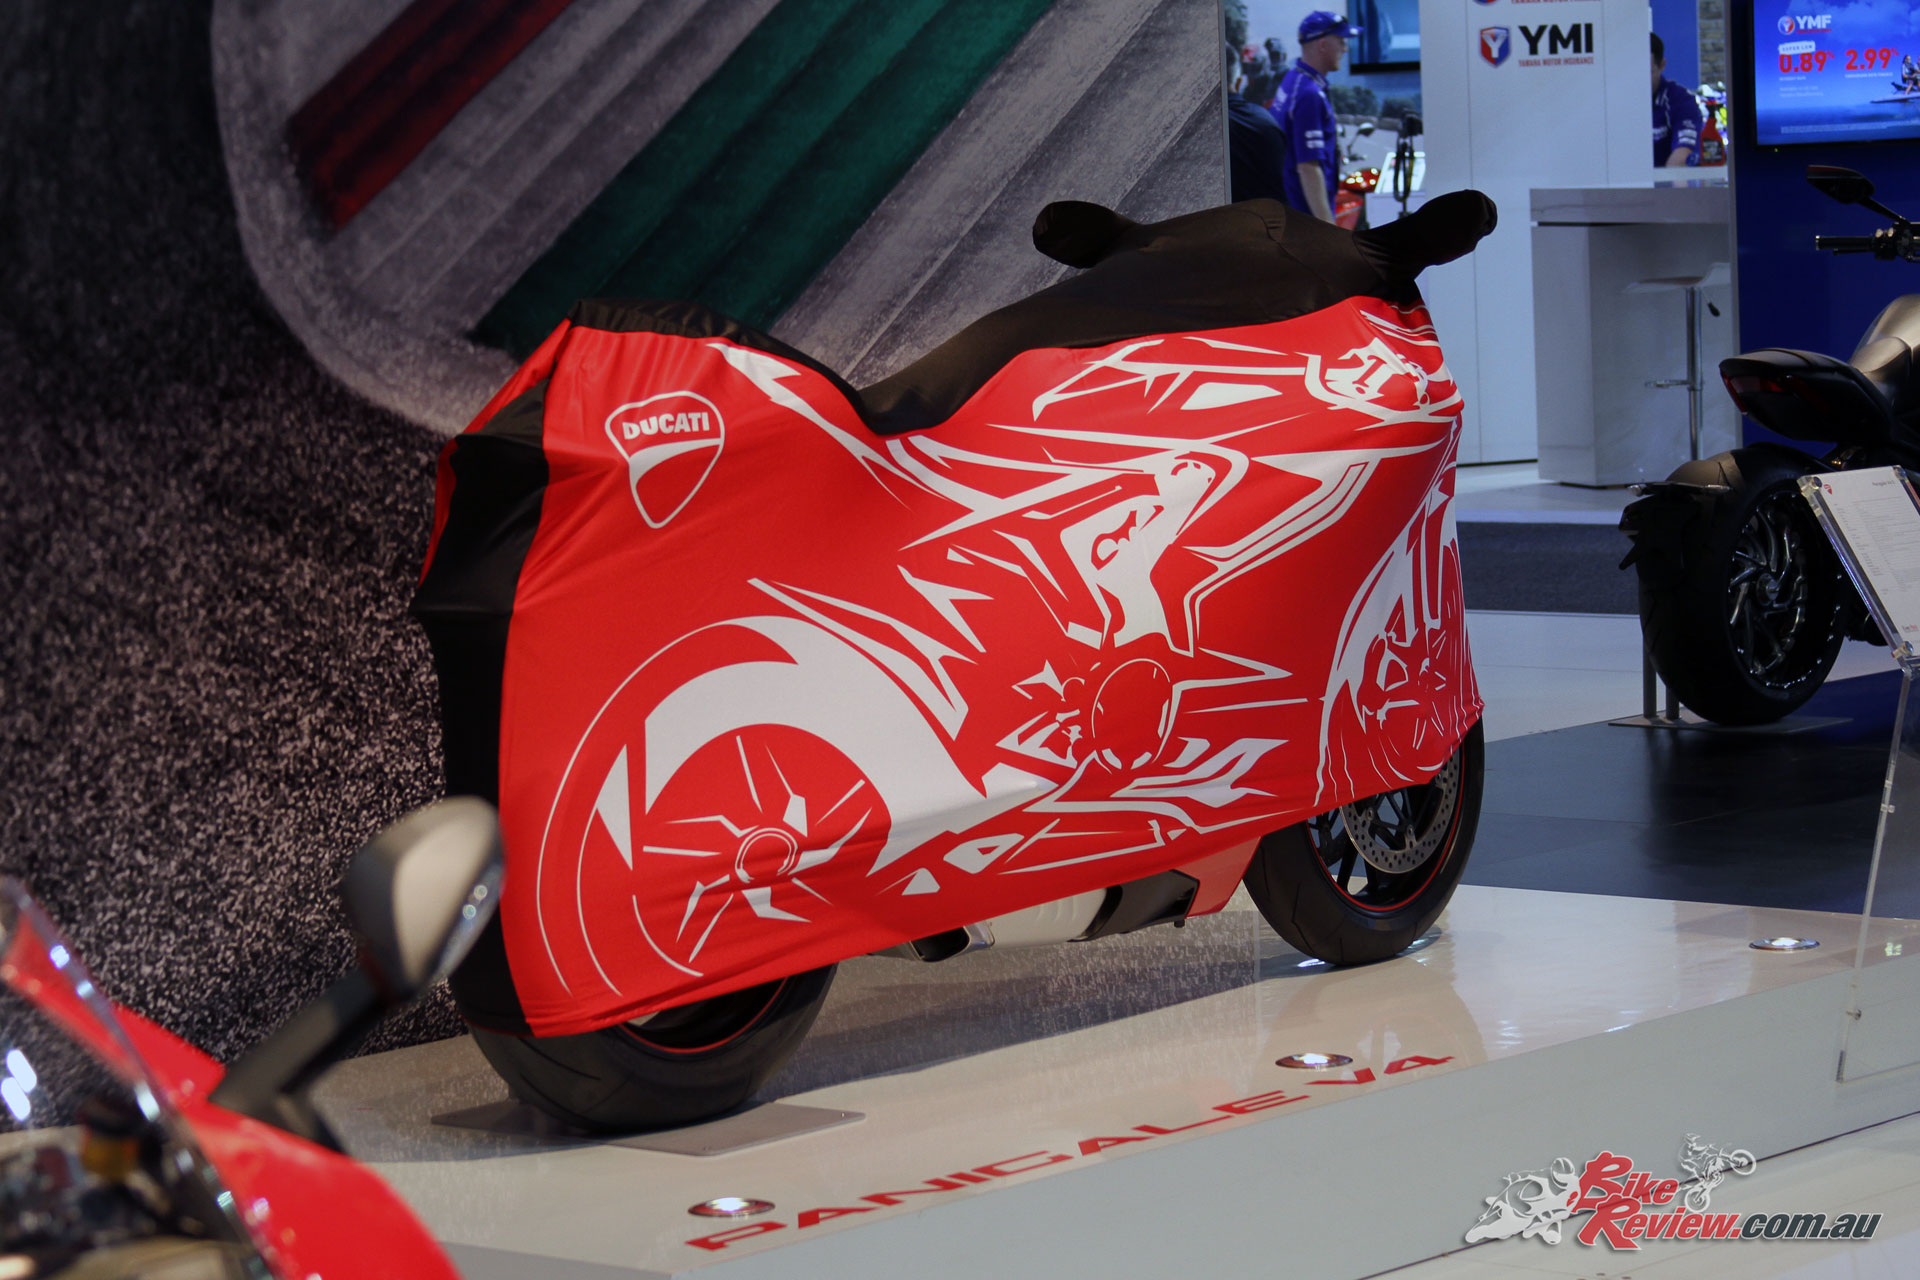 A big unveil from Ducati was the Panigale V4, with the S model on display